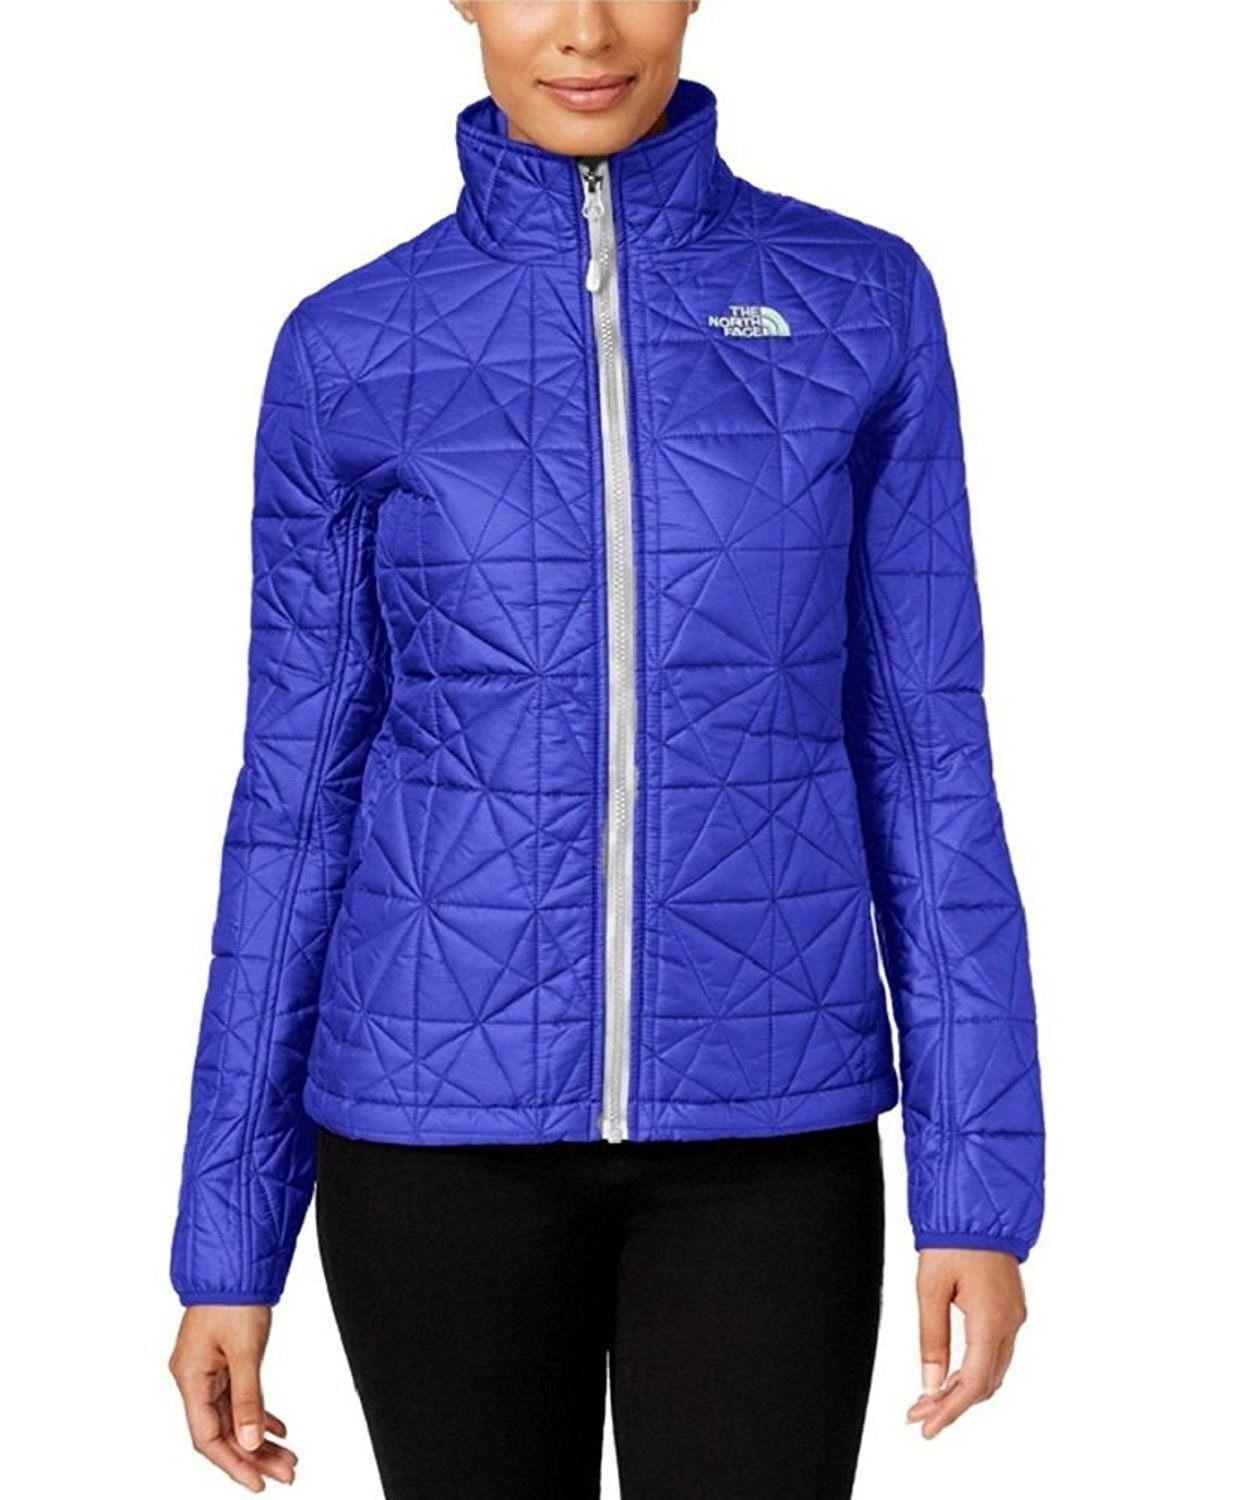 6917c88ba Details about The North Face Women's Tamburello Water Repellent Quilted  Jacket Size XS NWT